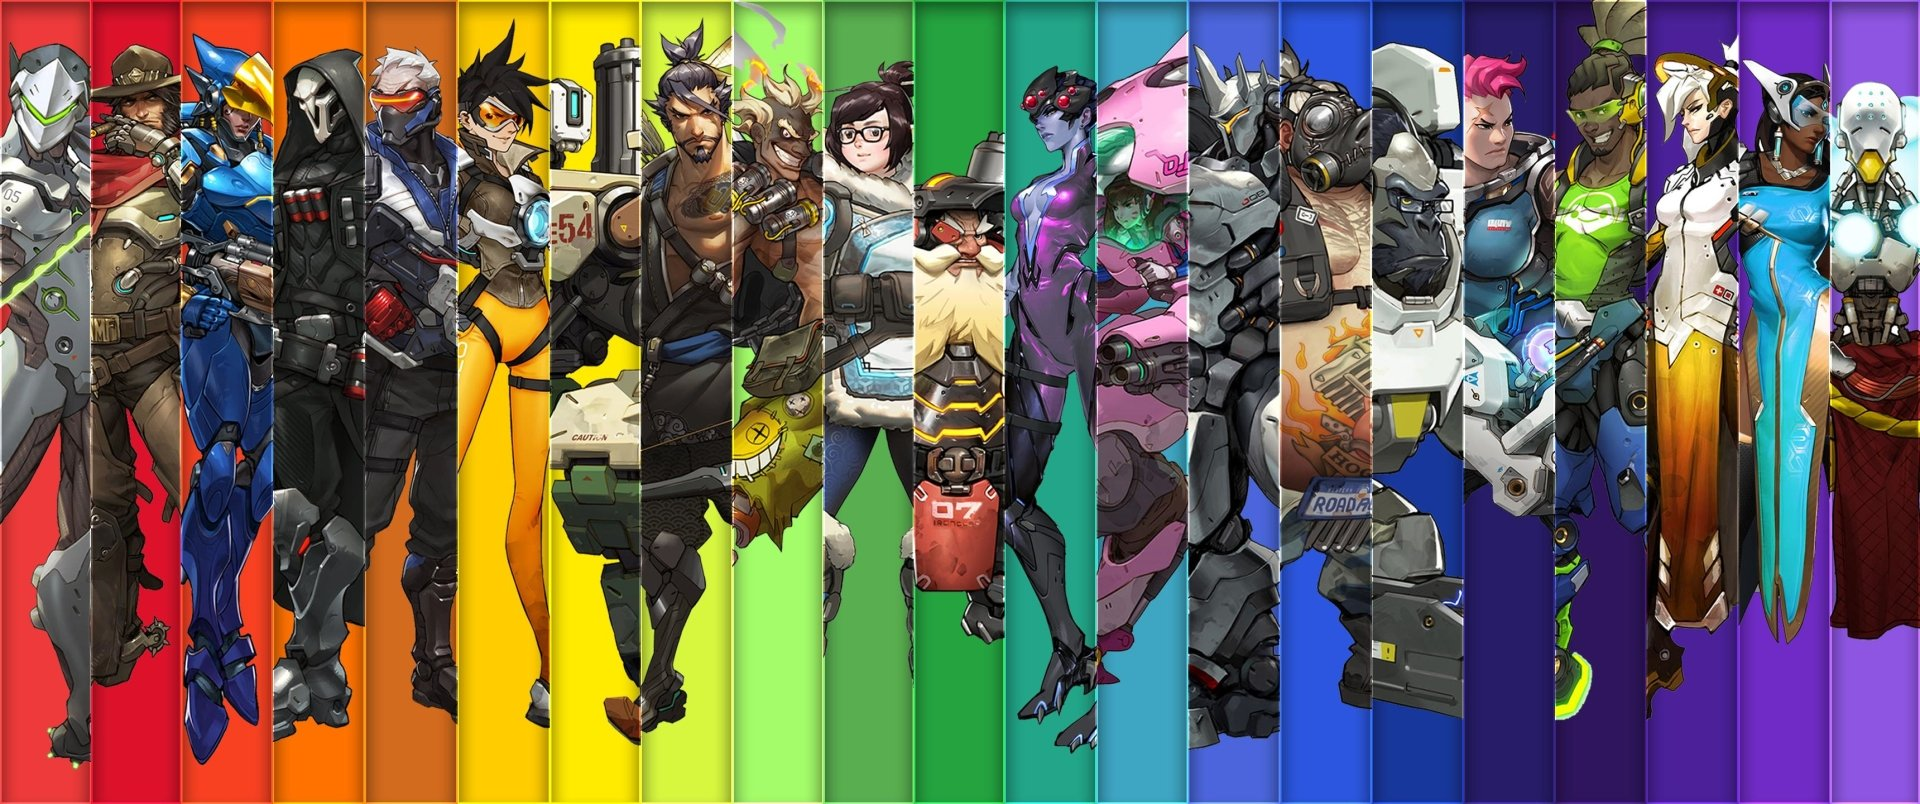 Overwatch Hanzo Wallpaper Iphone Overwatch Full Hd Wallpaper And Background Image